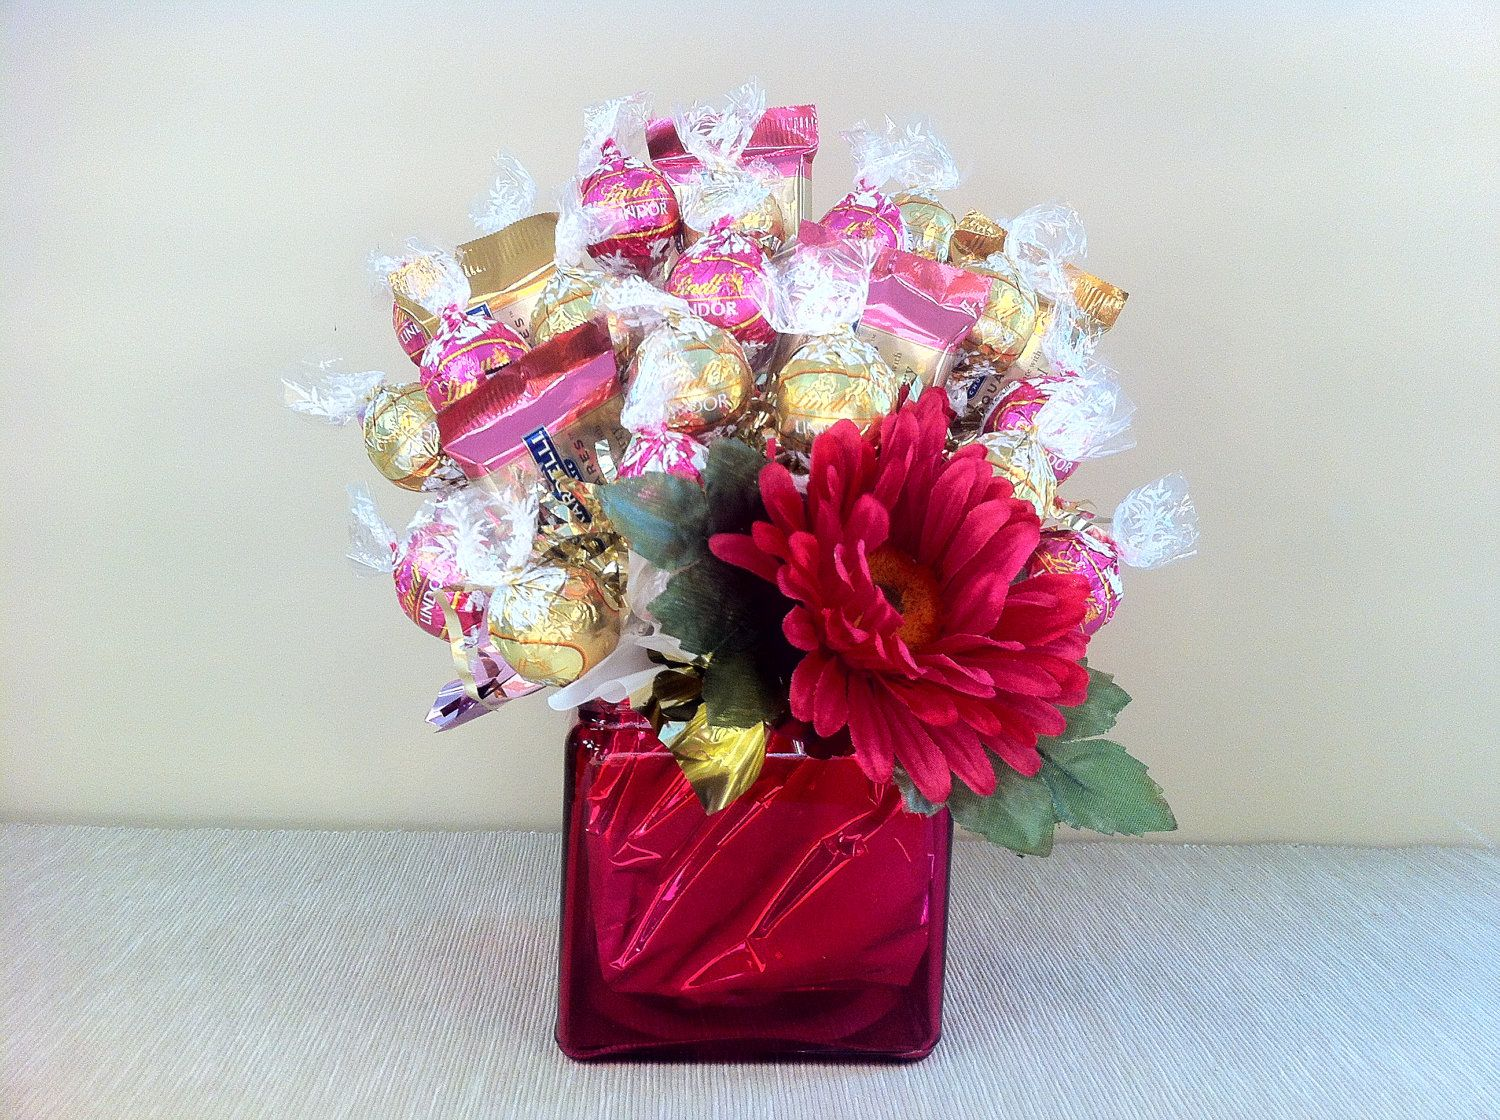 Chocolate bouquet on pinterest candy flowers bouquet of chocolate - Chocolate Candy Bouquet